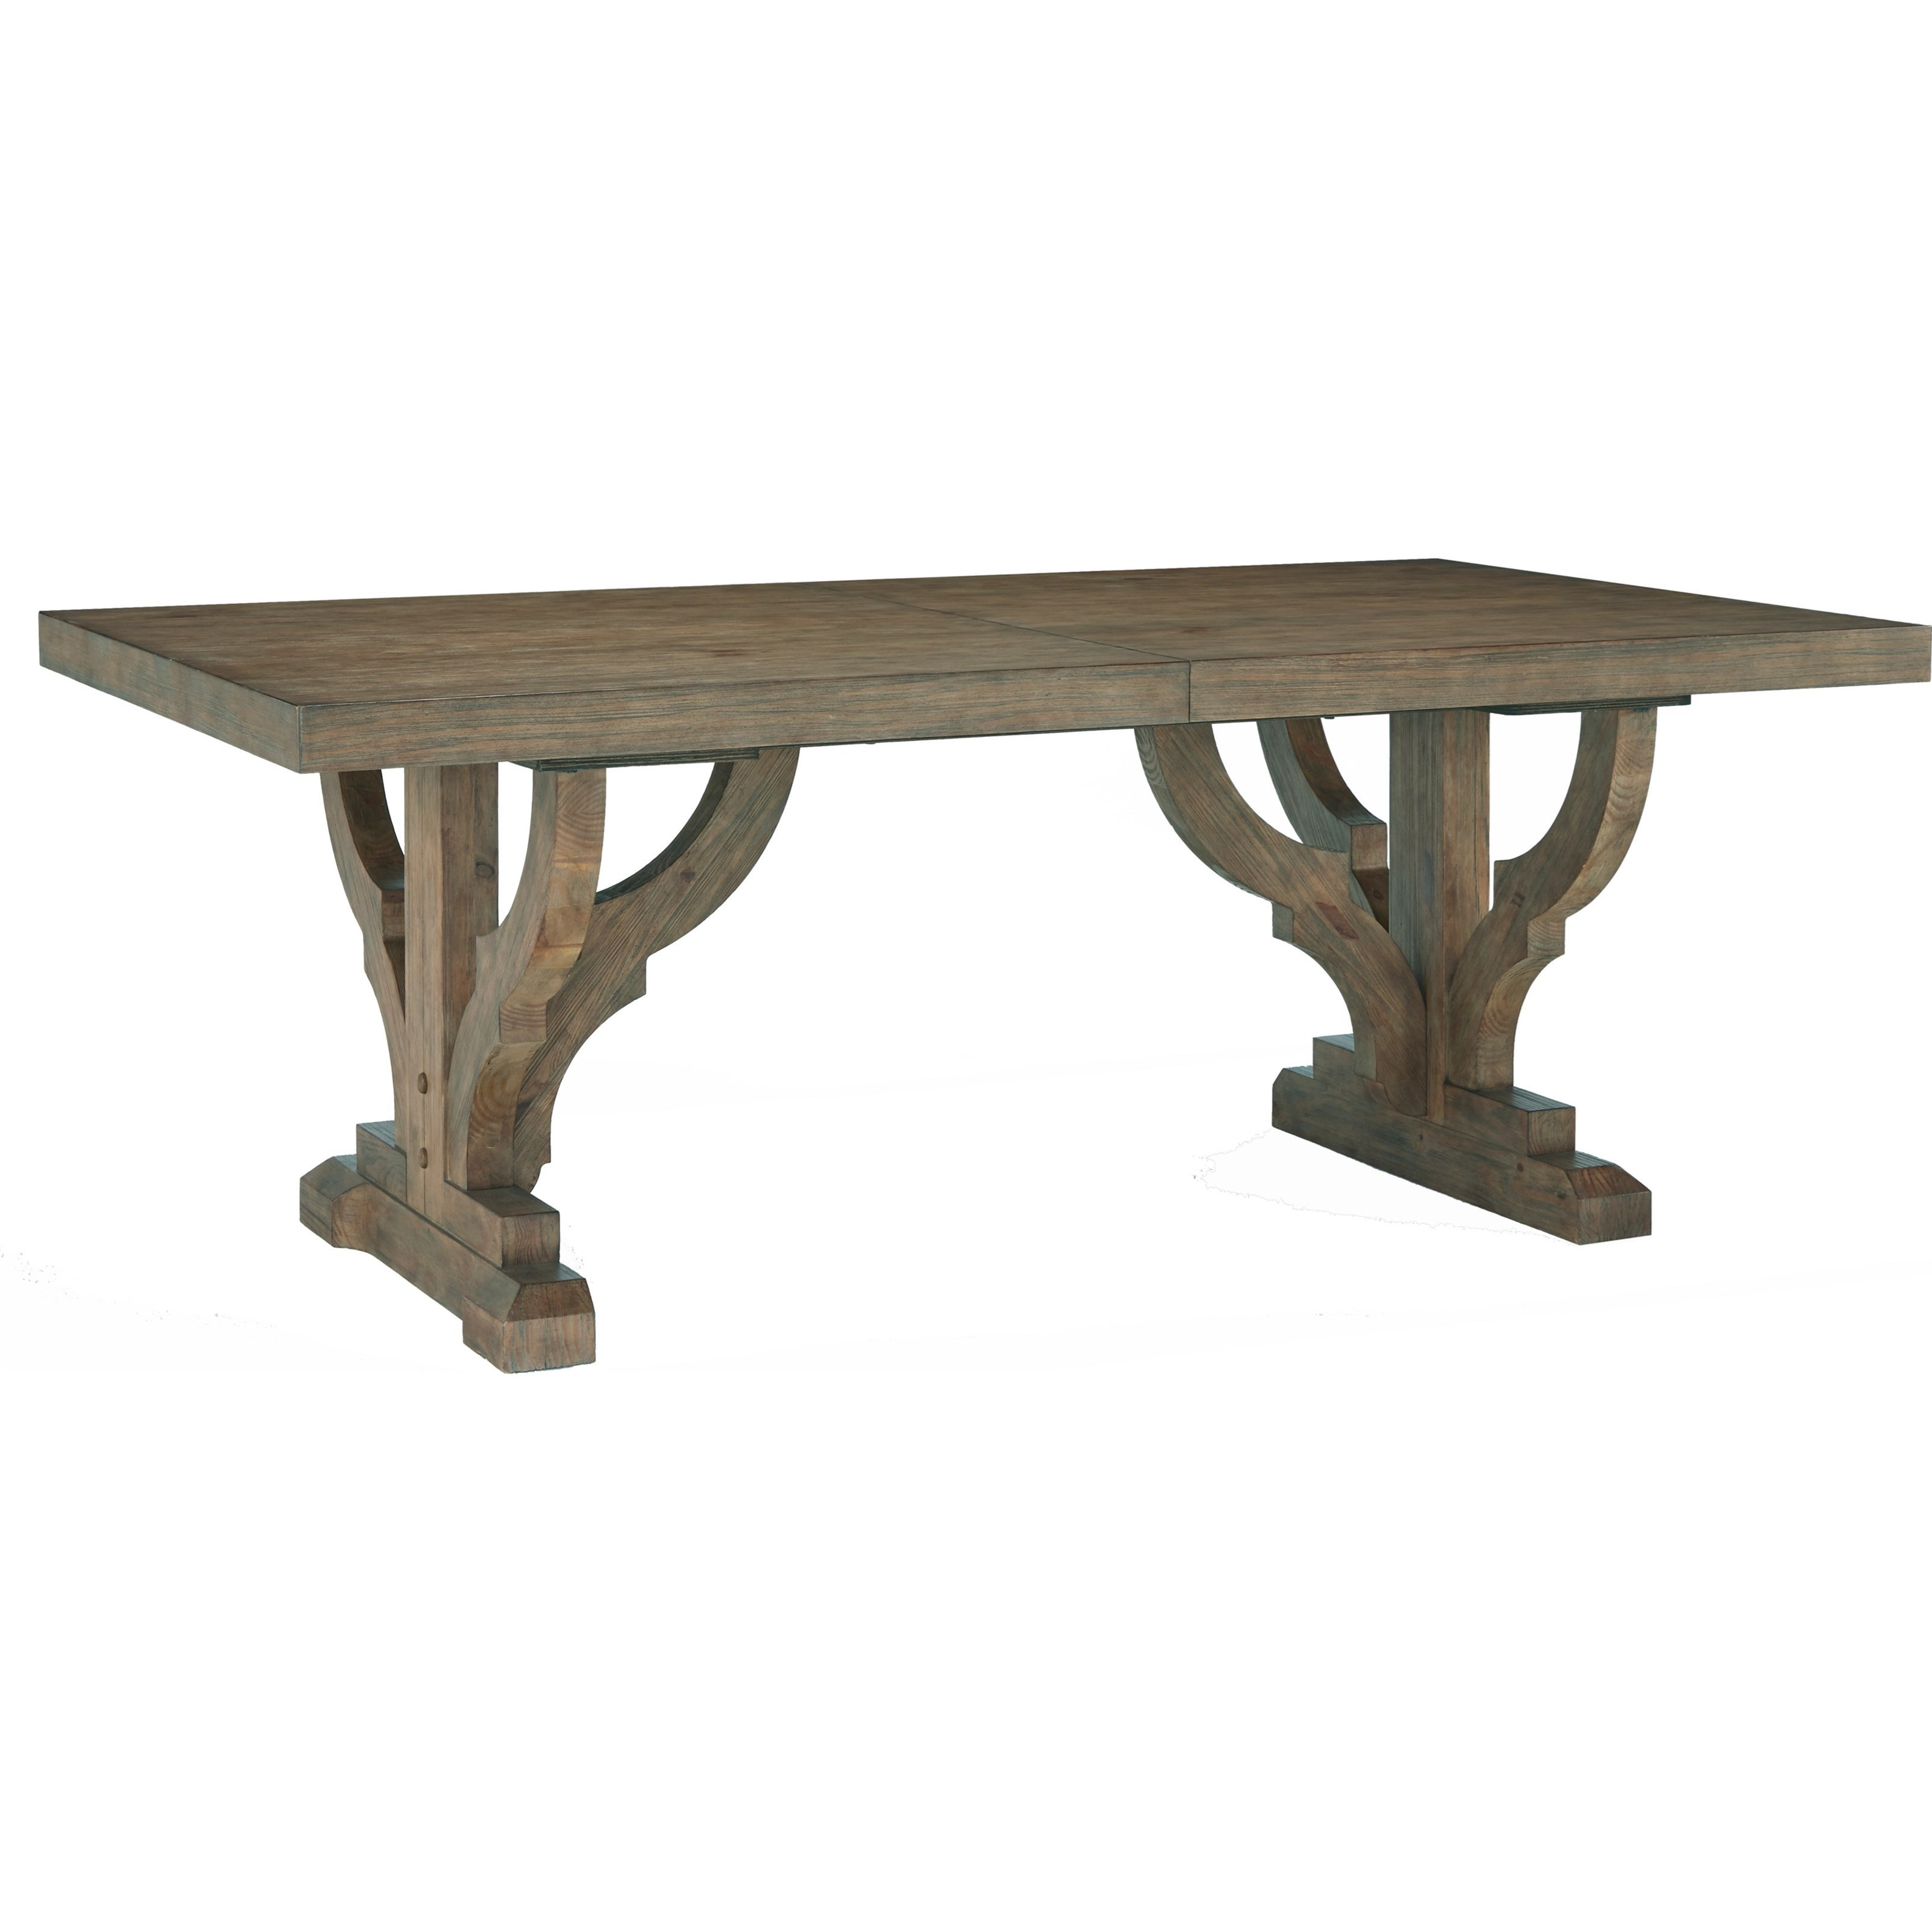 Broyhill Furniture Bedford Avenue 4th Street Architectural Salvage Table - Item Number: 8615-501